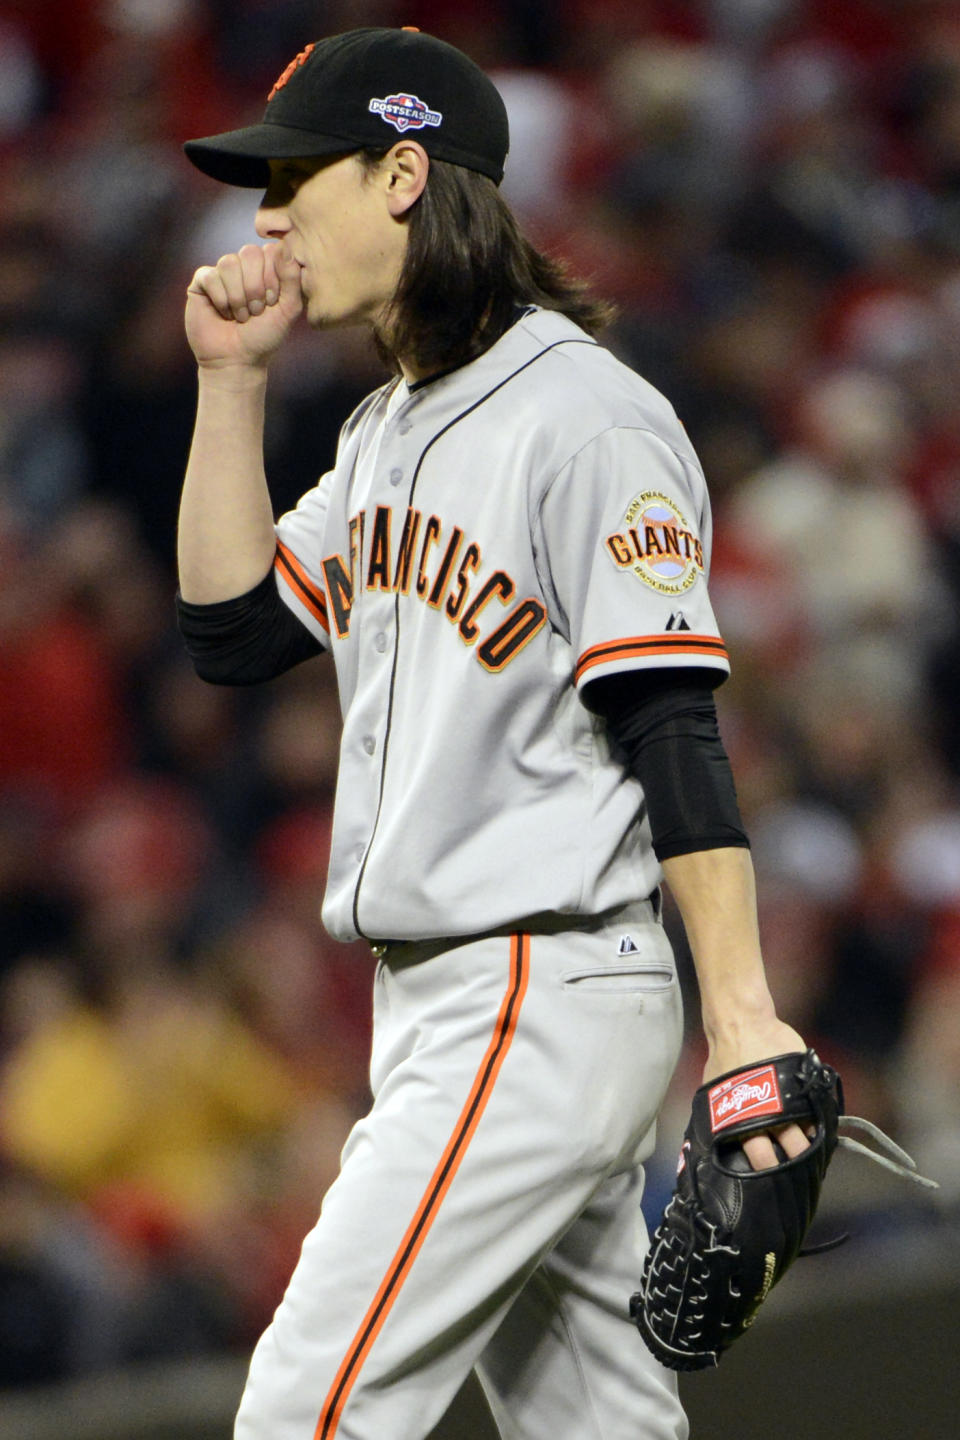 San Francisco Giants relief pitcher Tim Lincecum blows on his hands in the eighth inning of Game 4 of the National League division baseball series against the Cincinnati Reds, Wednesday, Oct. 10, 2012, in Cincinnati. Lincecum was the winning pitcher in the game won by the Giants 8-3. (AP Photo/Michael Keating)